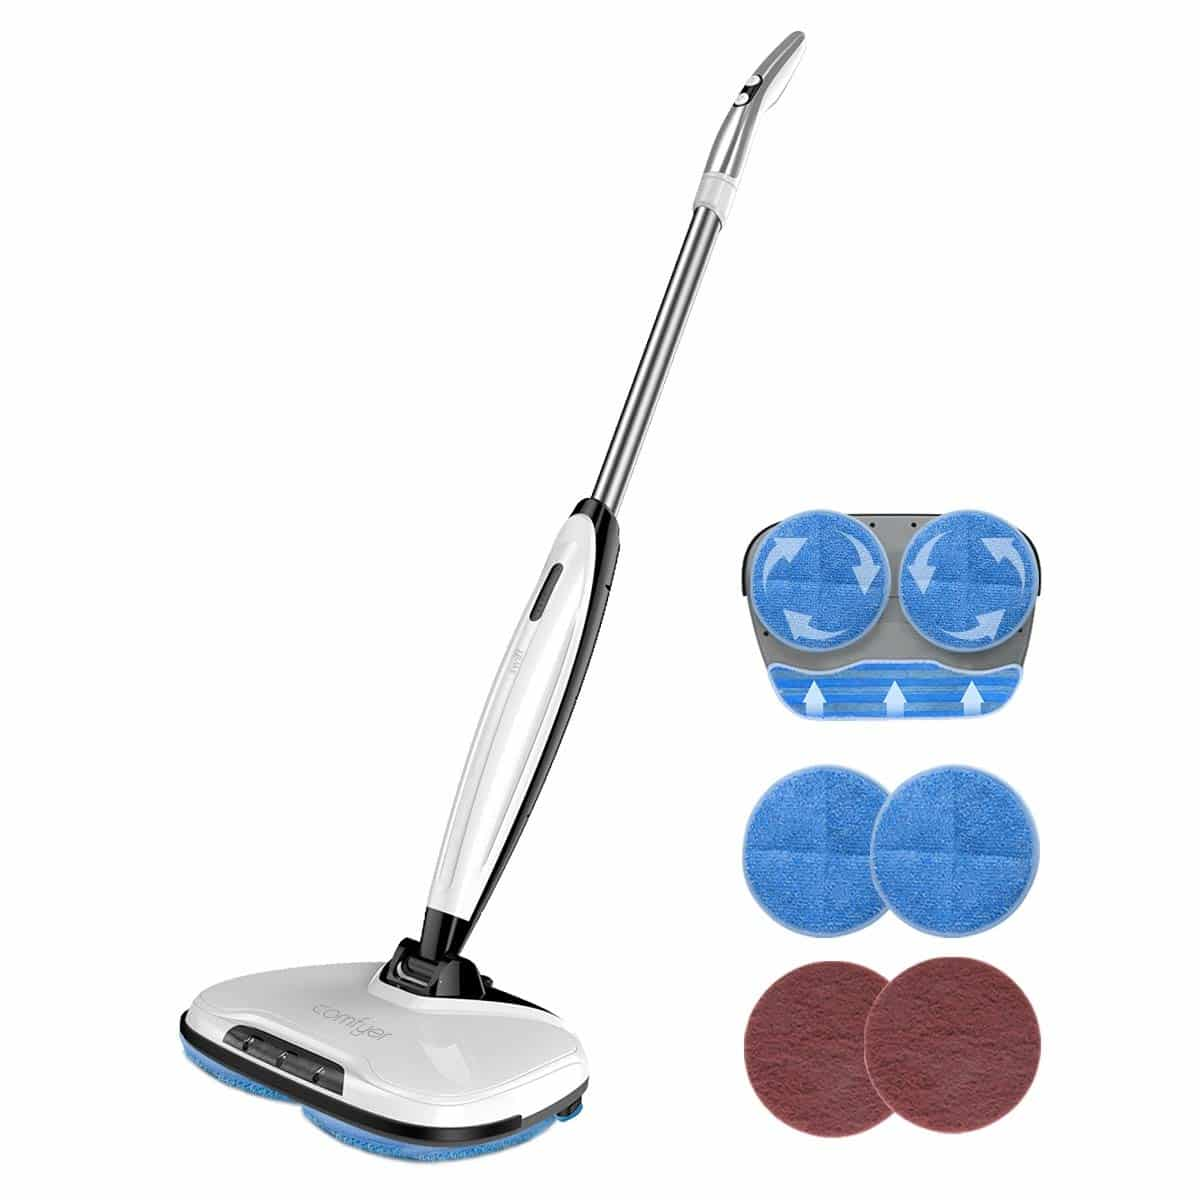 Comfyer Swift Cordless Electric Spin Mop